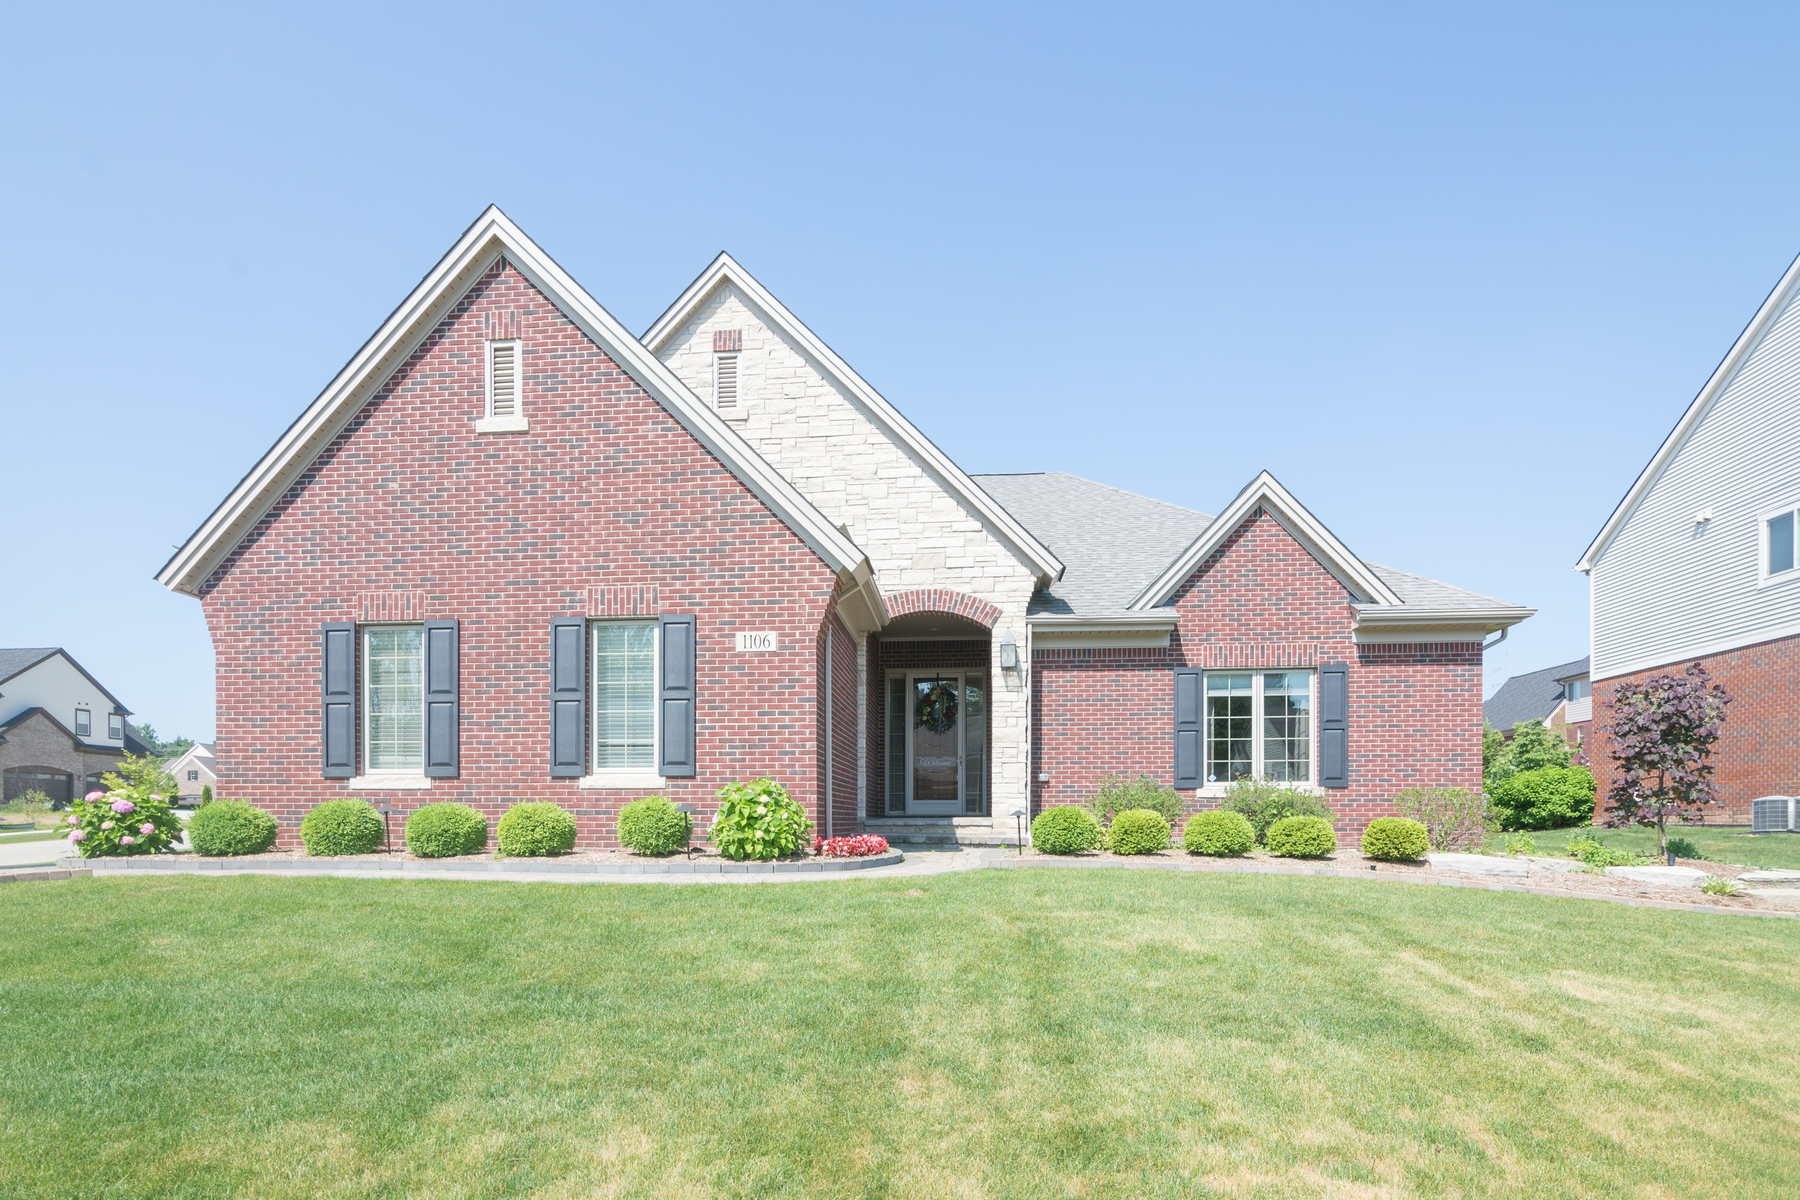 Single Family Homes for Sale at Rochester Hills 1106 Pembroke Court Rochester Hills, Michigan 48307 United States